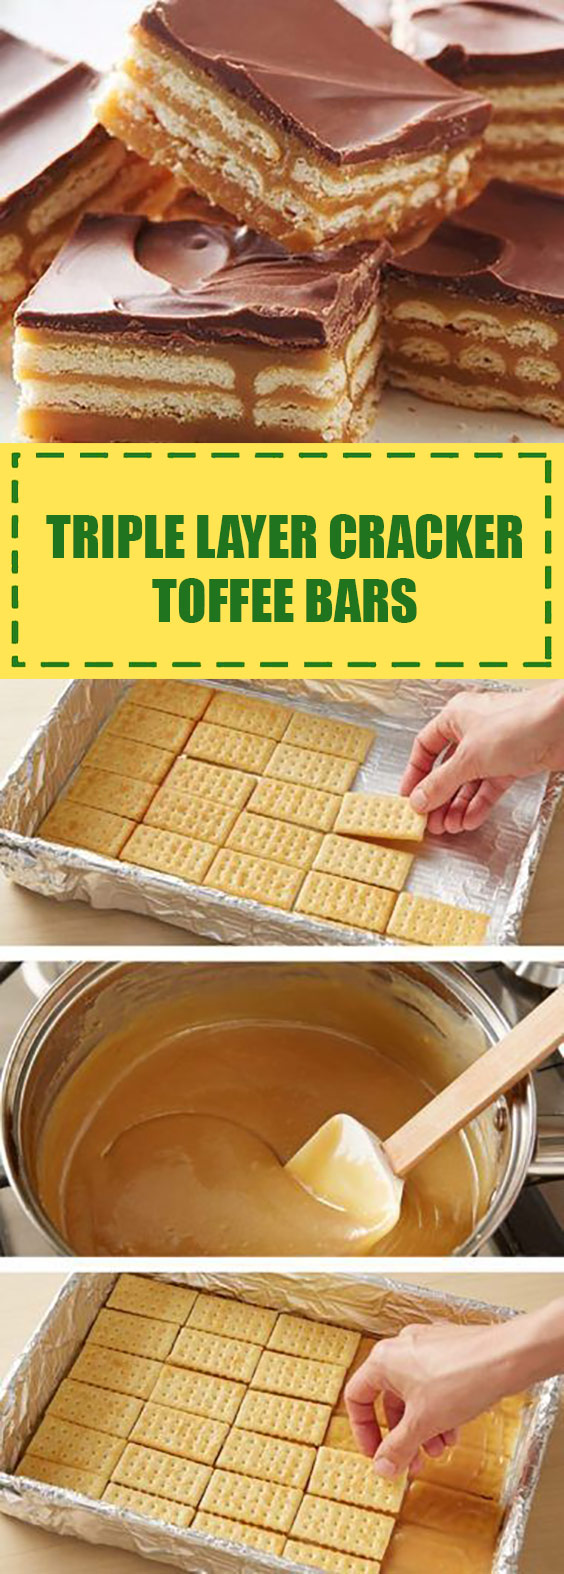 Triple Layer Cracker Toffee Bars